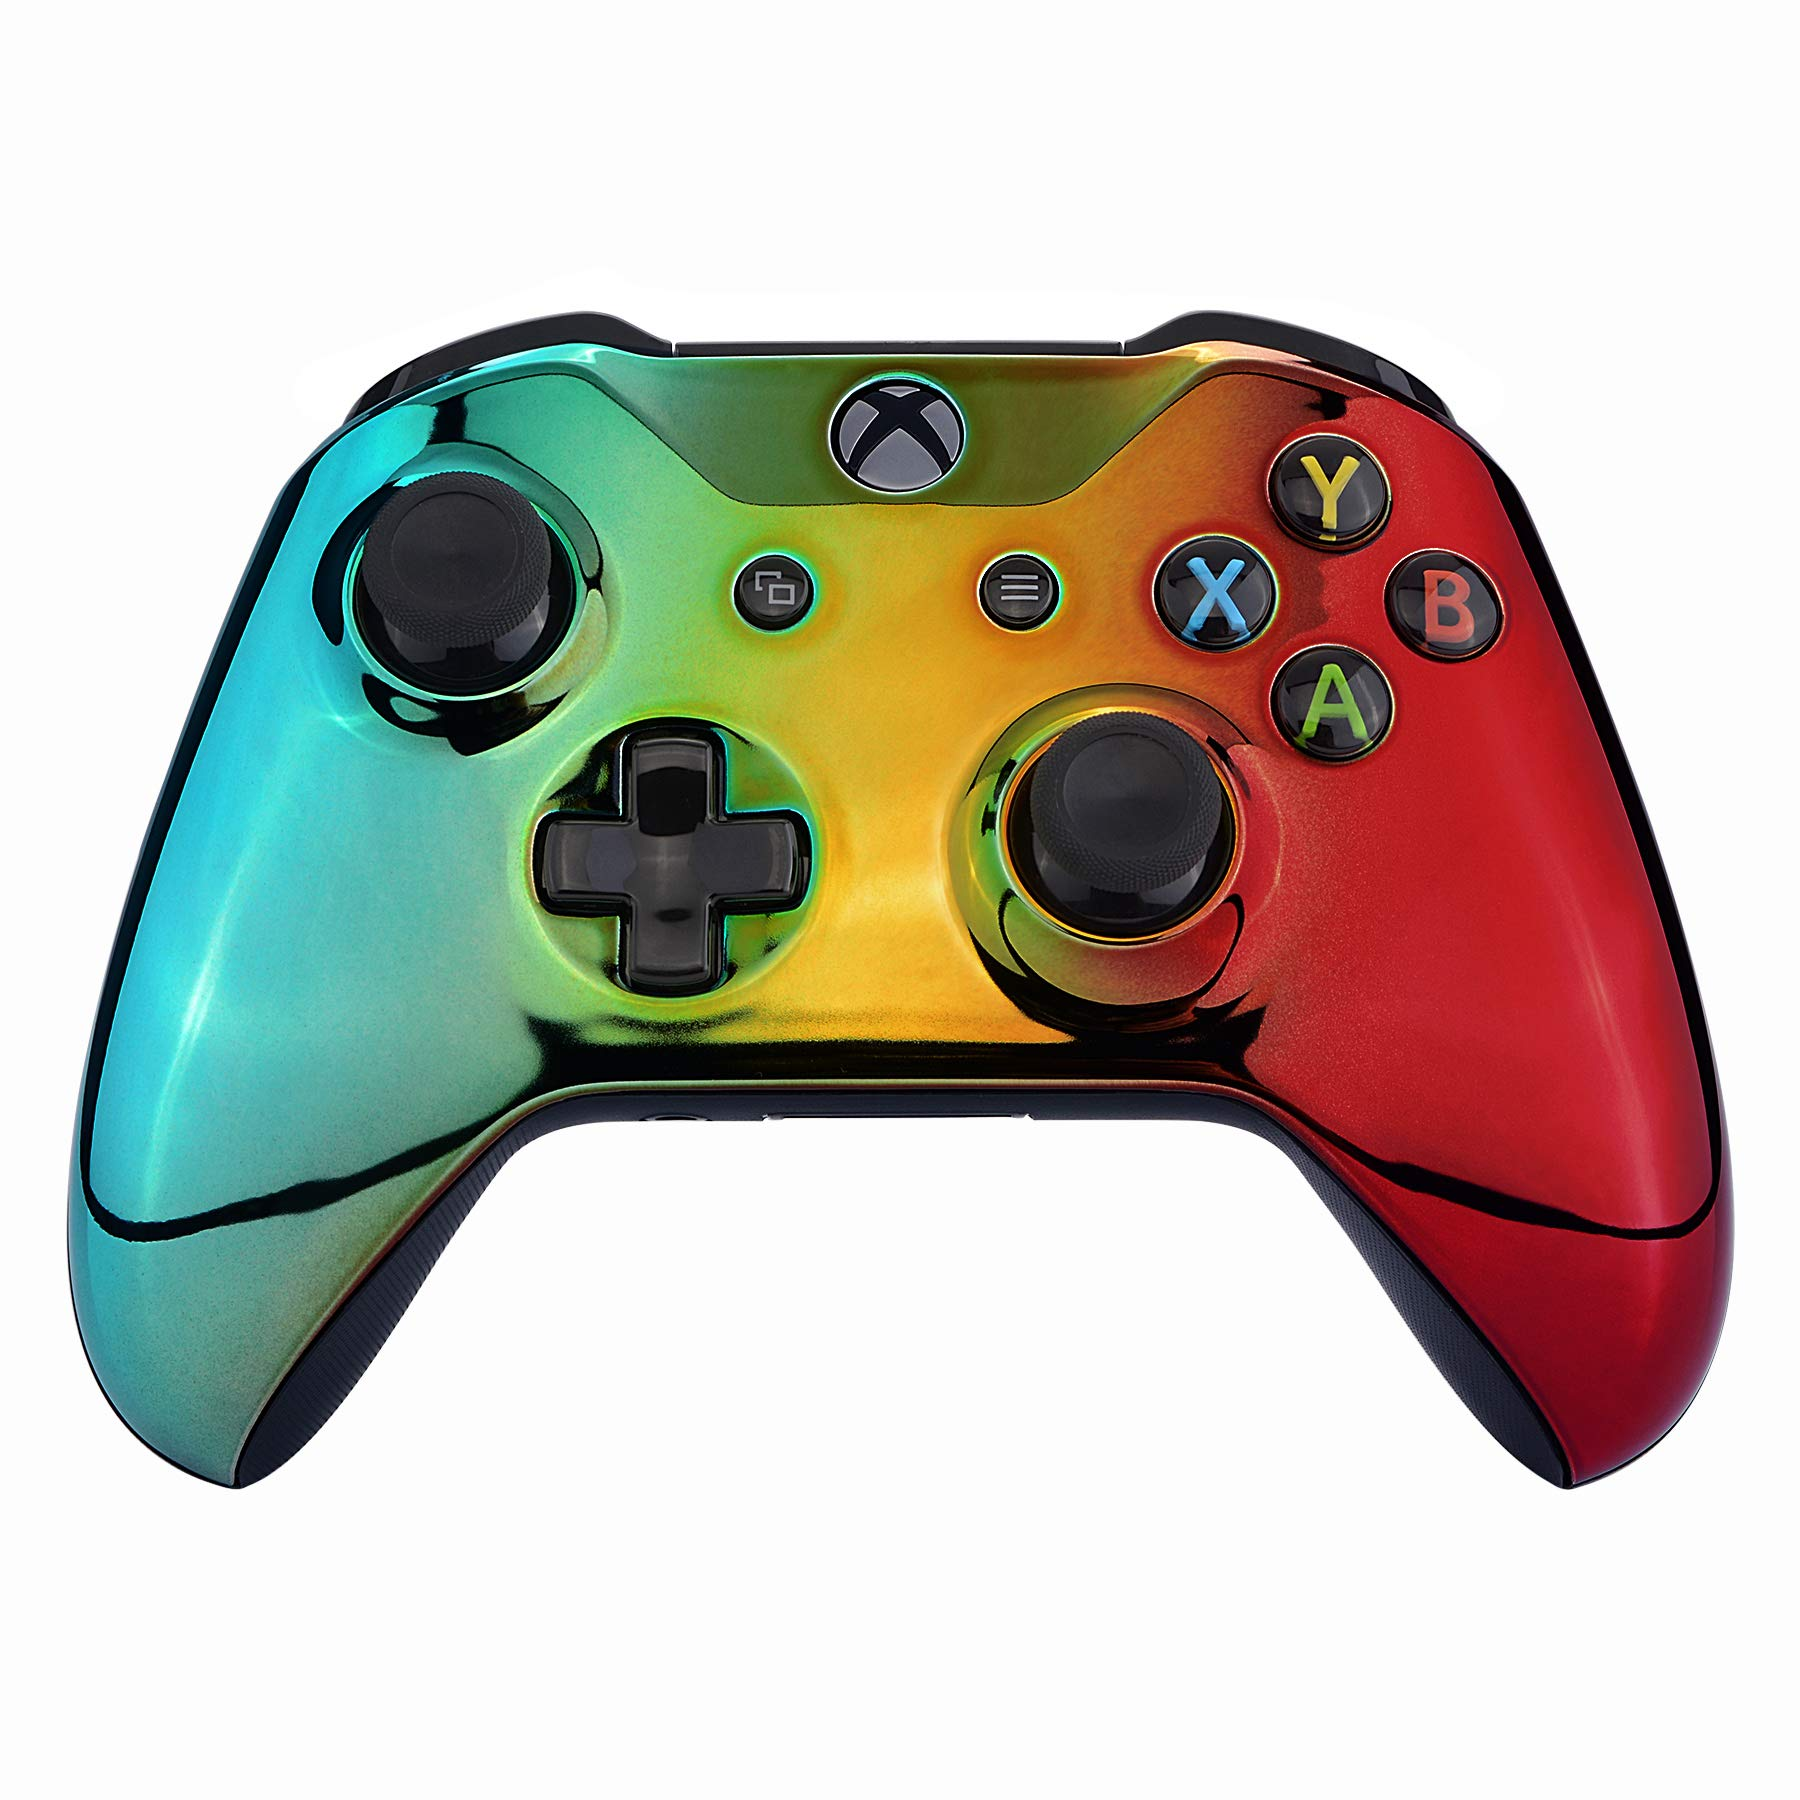 eXtremeRate Tri-Color Gradient Faceplate Cover, Chrome Cyan Gold Red Front Housing Shell Case Replacement Kit for Xbox One S & Xbox One X Controller (Model 1708)